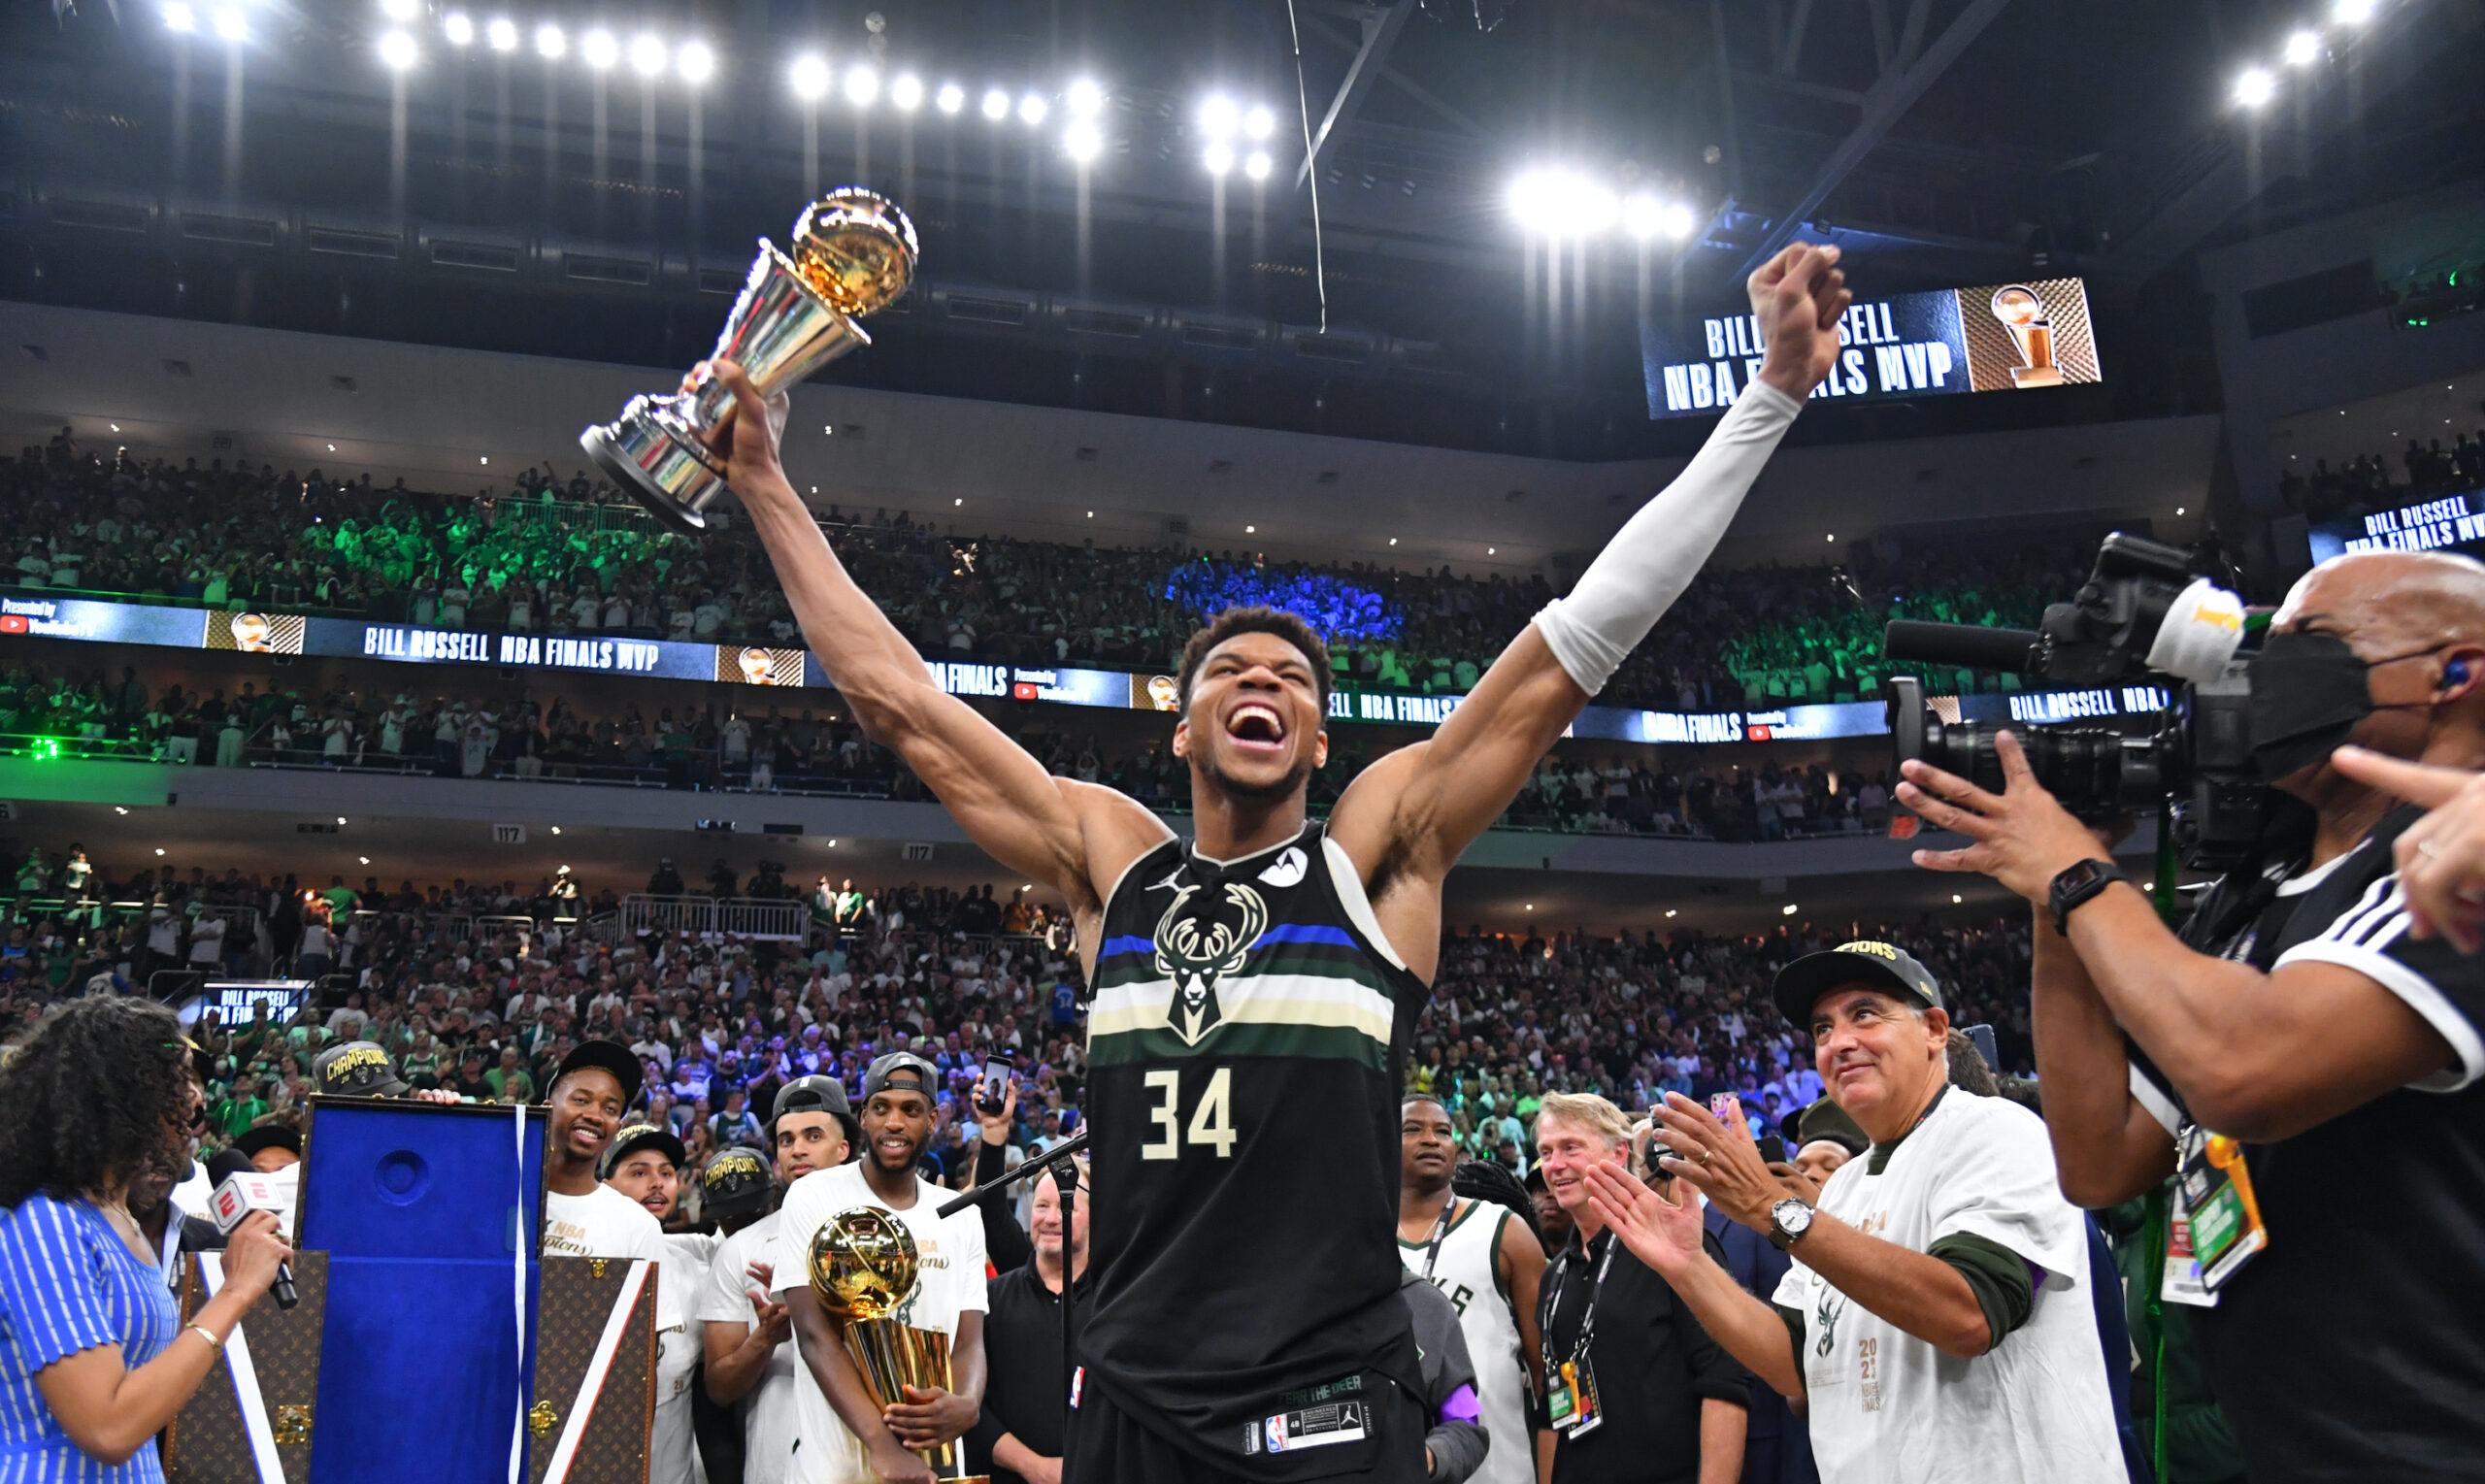 Milwaukee Bucks look to repeat, without losing their edge